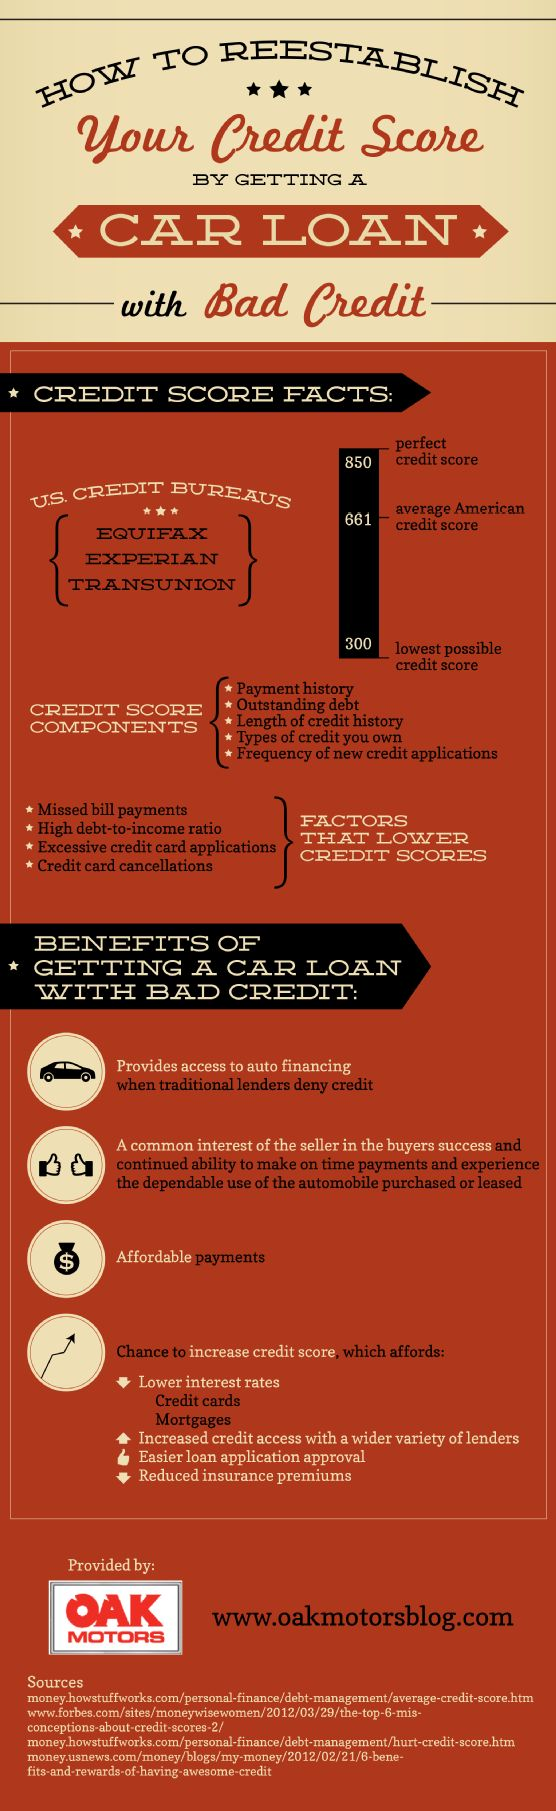 Missing payments accruing more debt than income and applying for or canceling a lot average credit scorecar loanscar dealershipsused